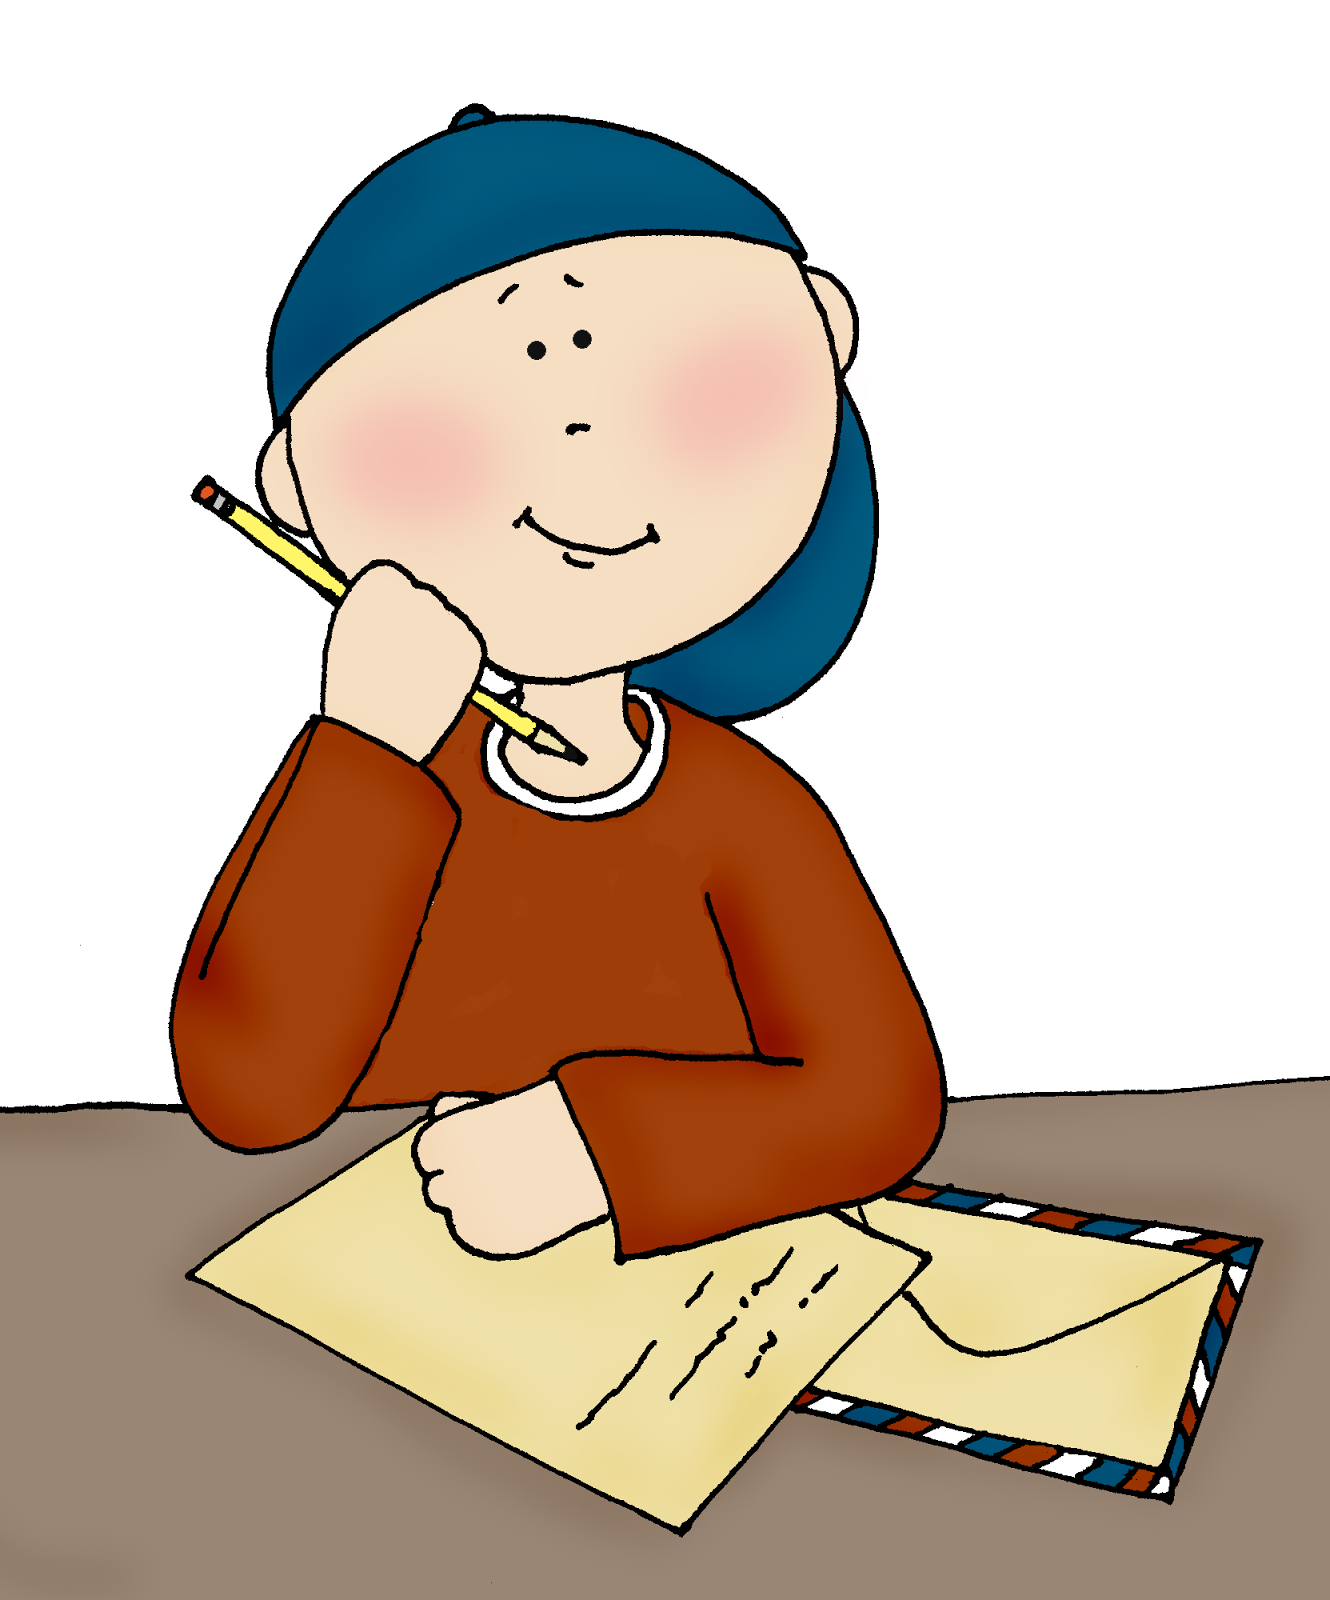 Cartoon Writing Stock Photos and Images